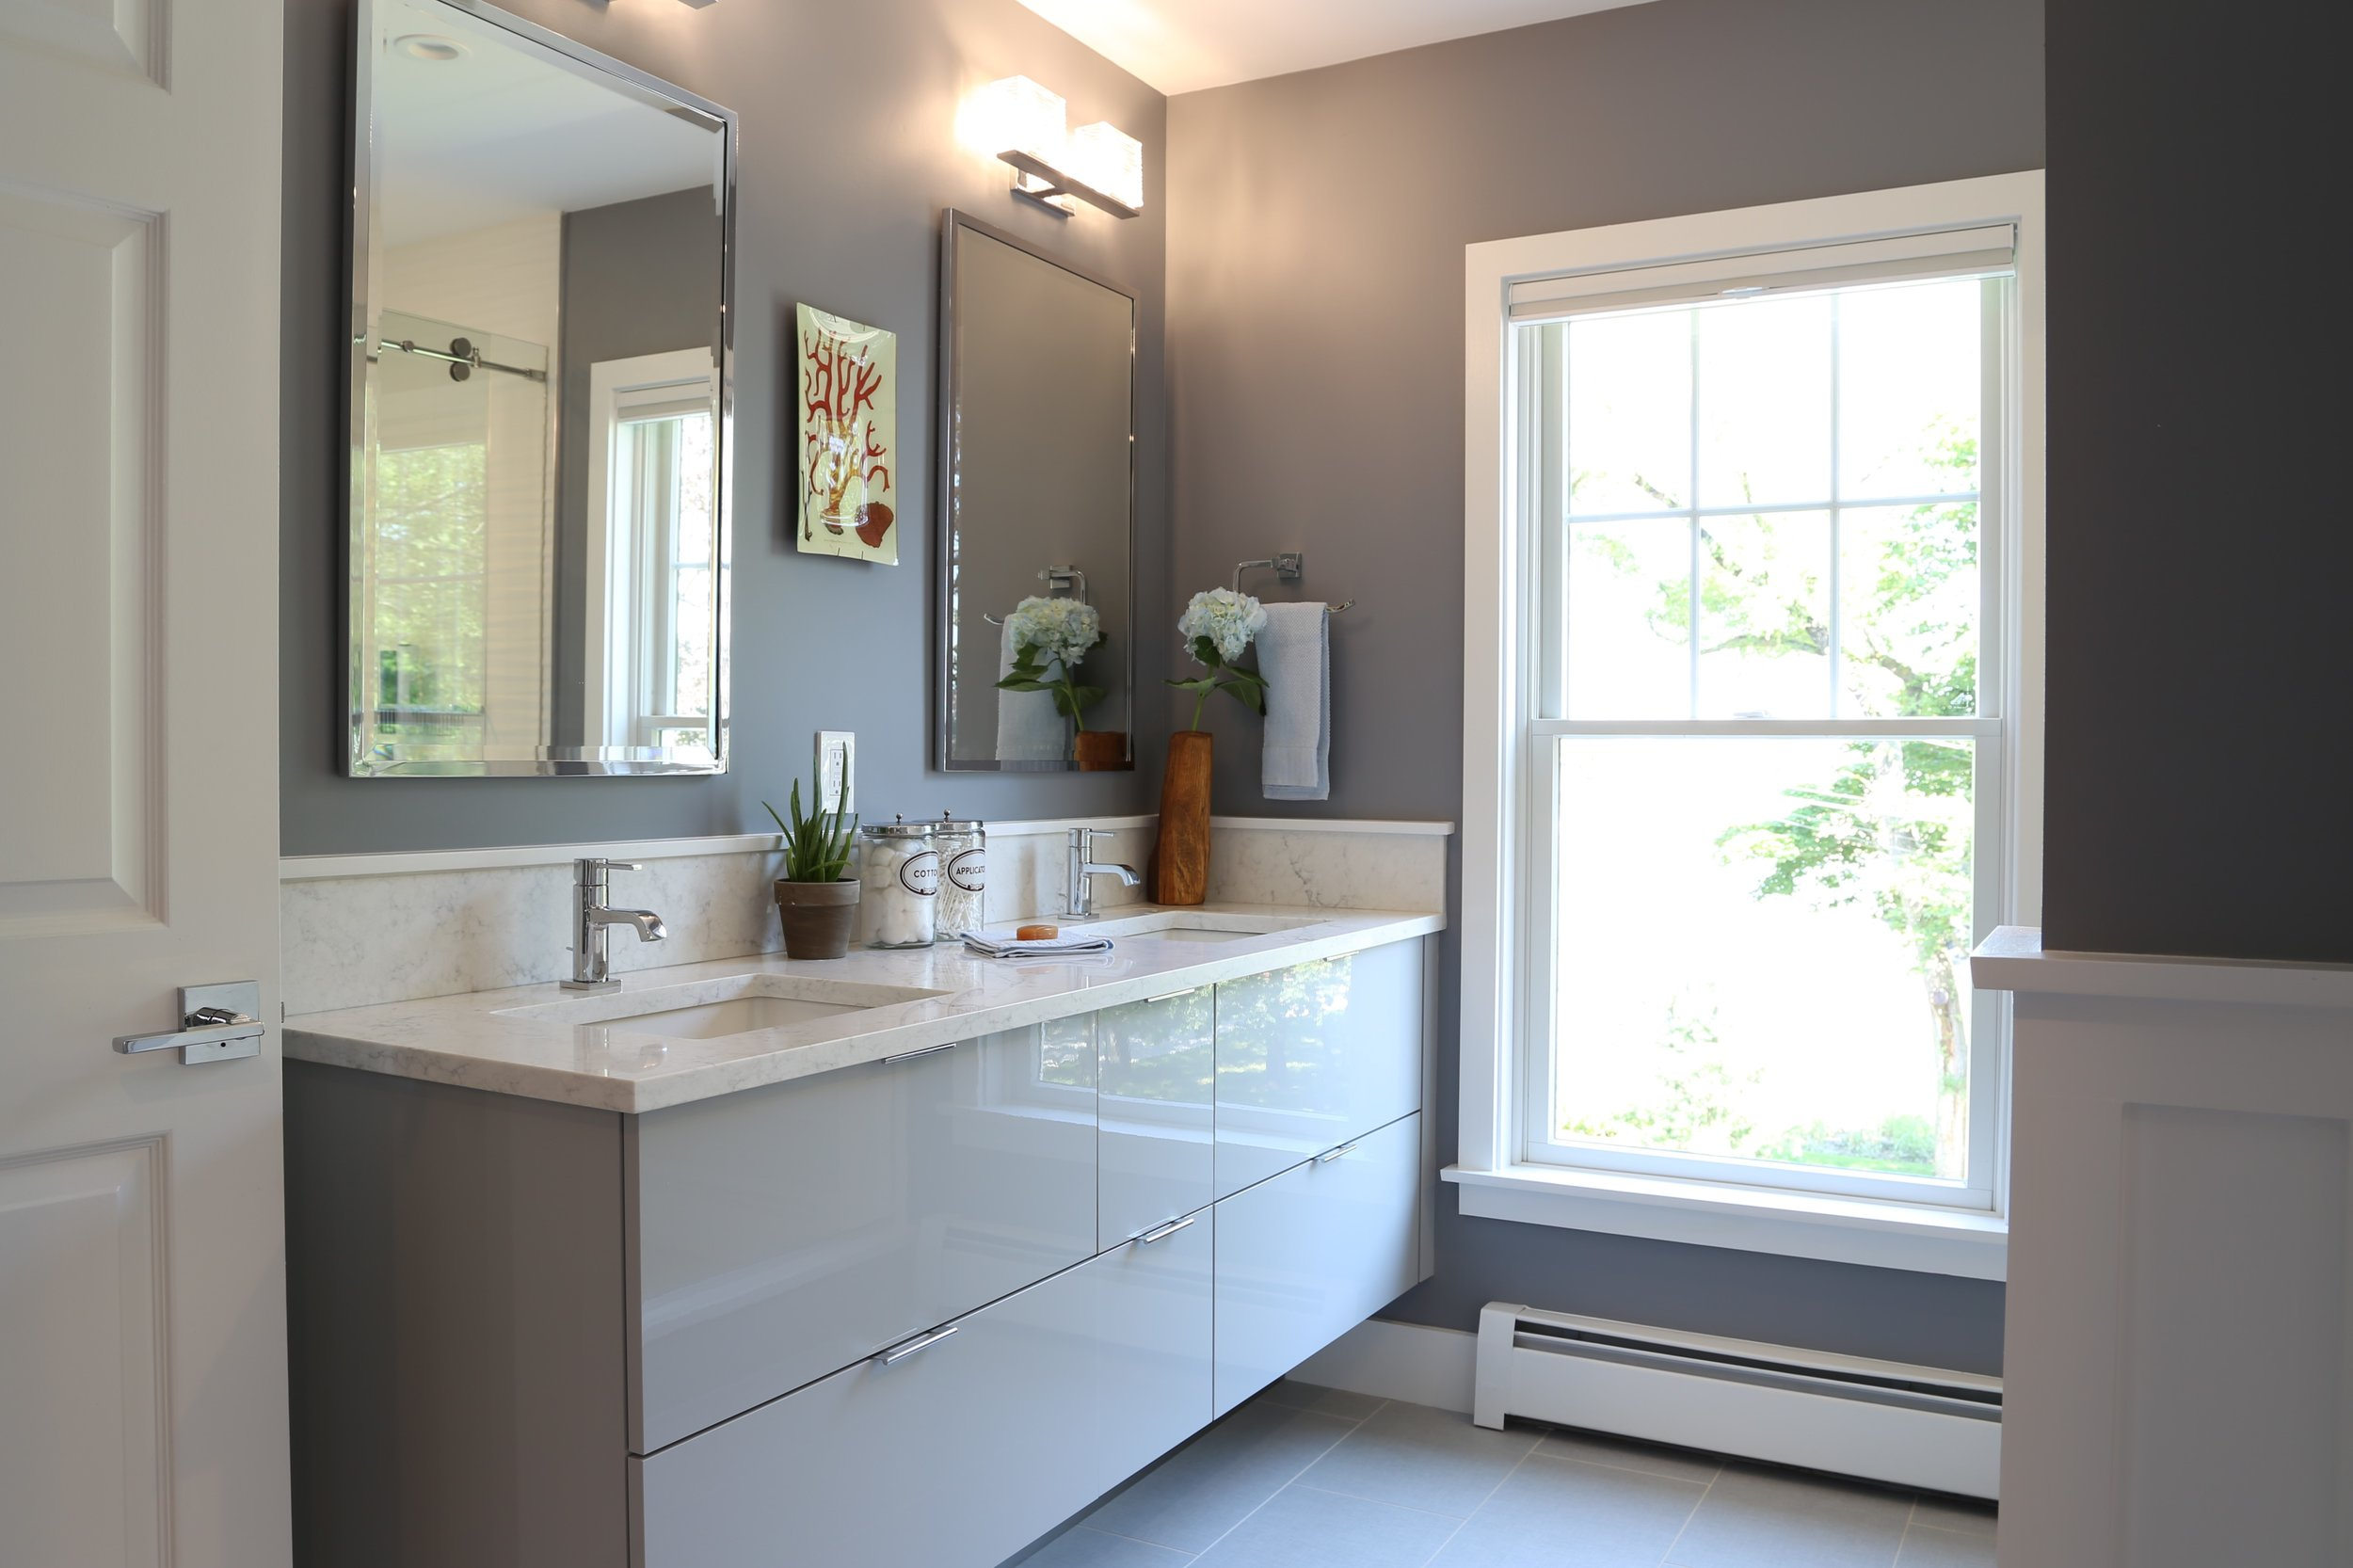 Floating Vanity - A modern floating vanity with clean simple line provides ample storage and easy to clean floor beneath.